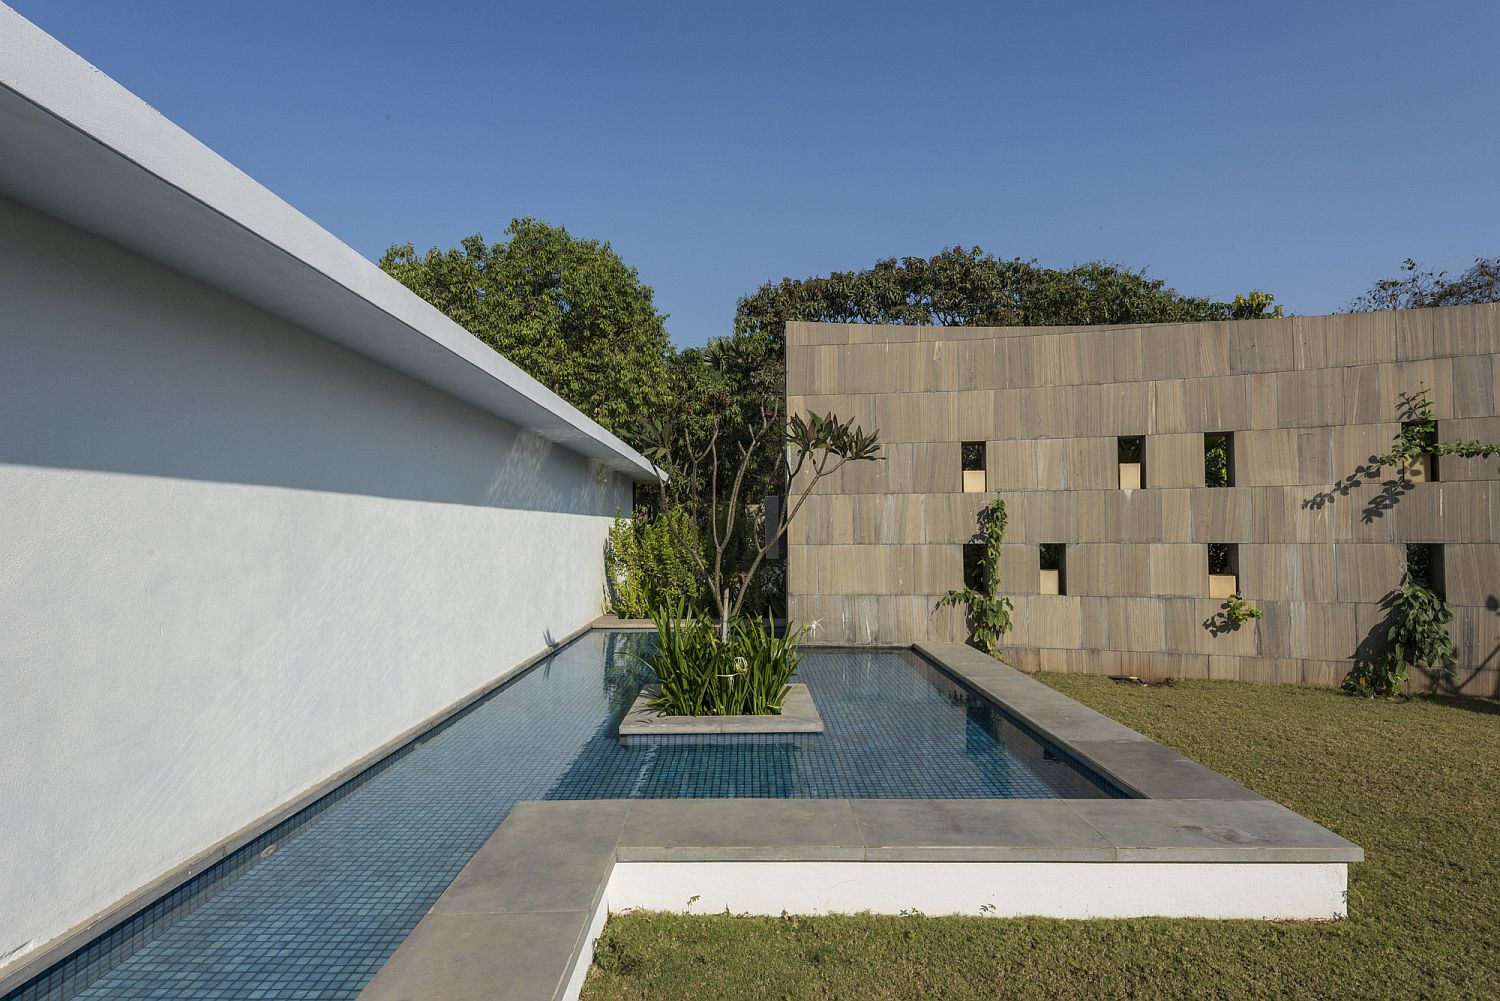 Pool area of the home with curved stone wall